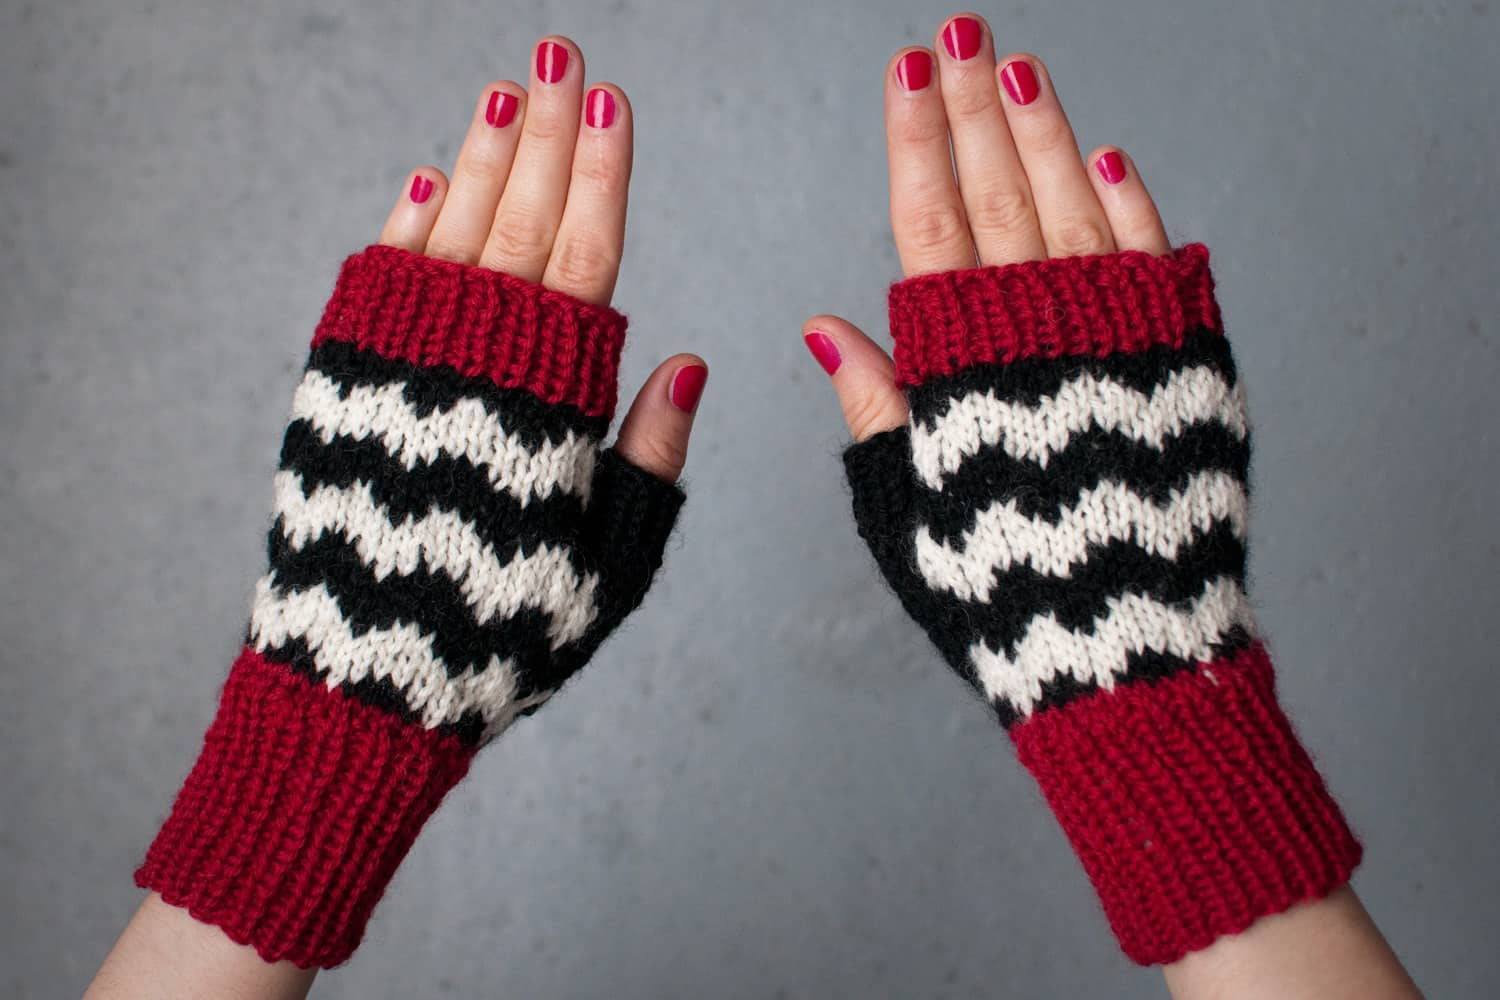 Black Lodge Mitts Knitting Pattern To Make Your Own Or